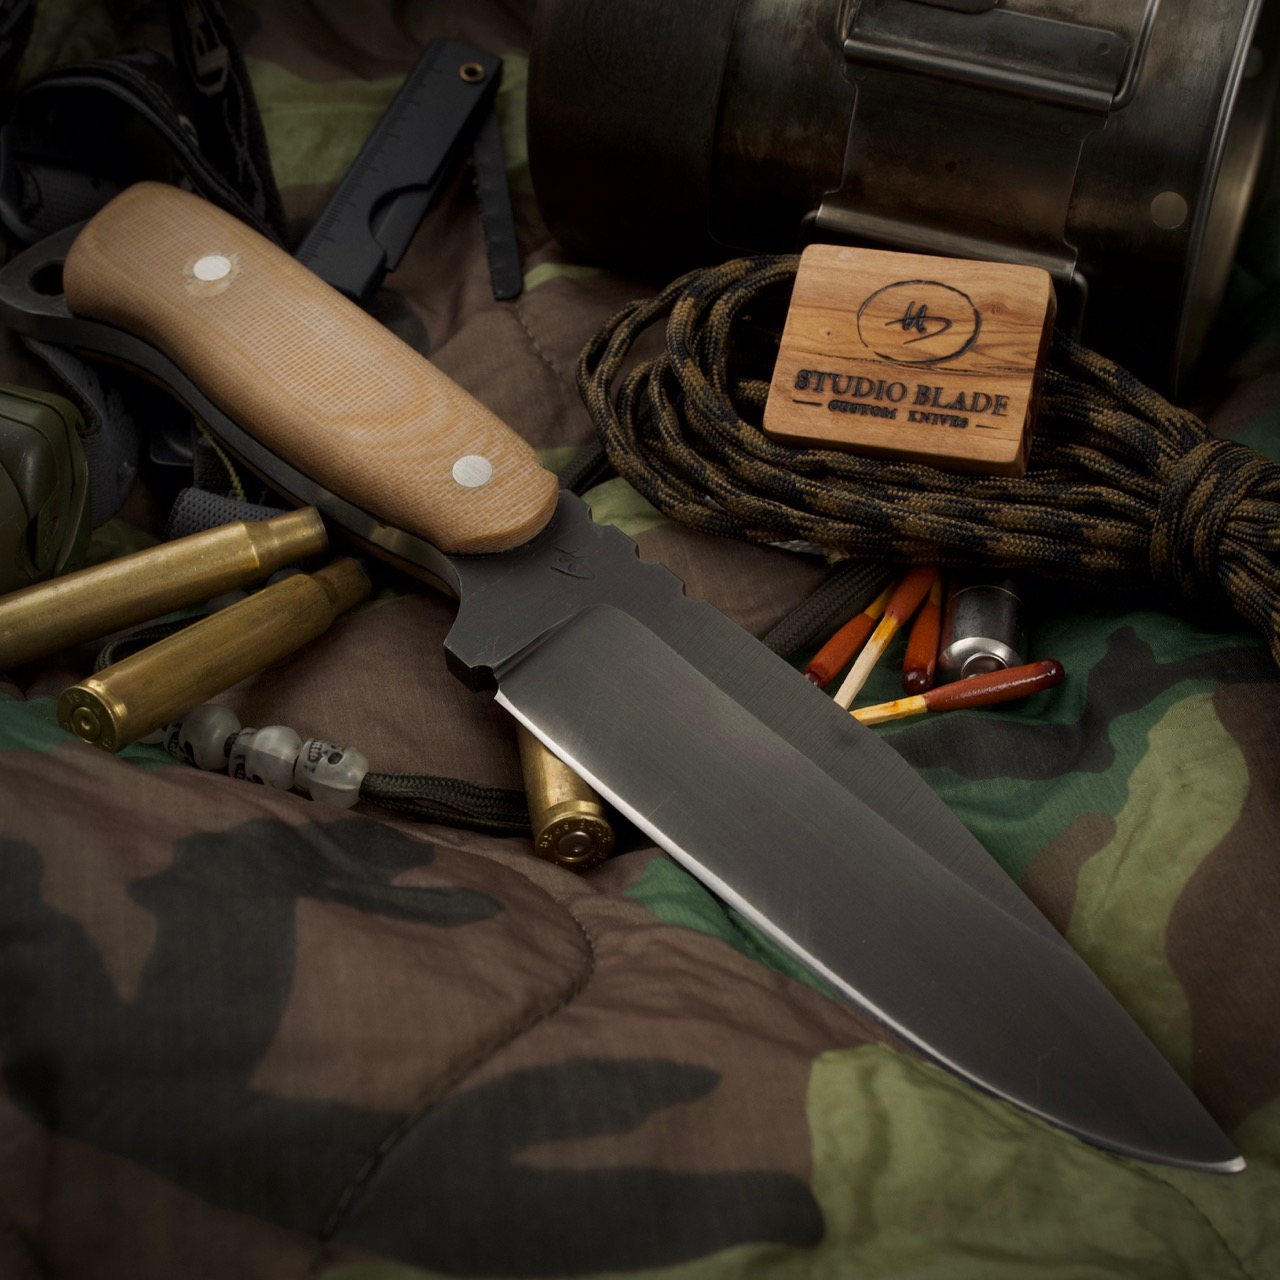 S.E.R.E. instructor prototype knife